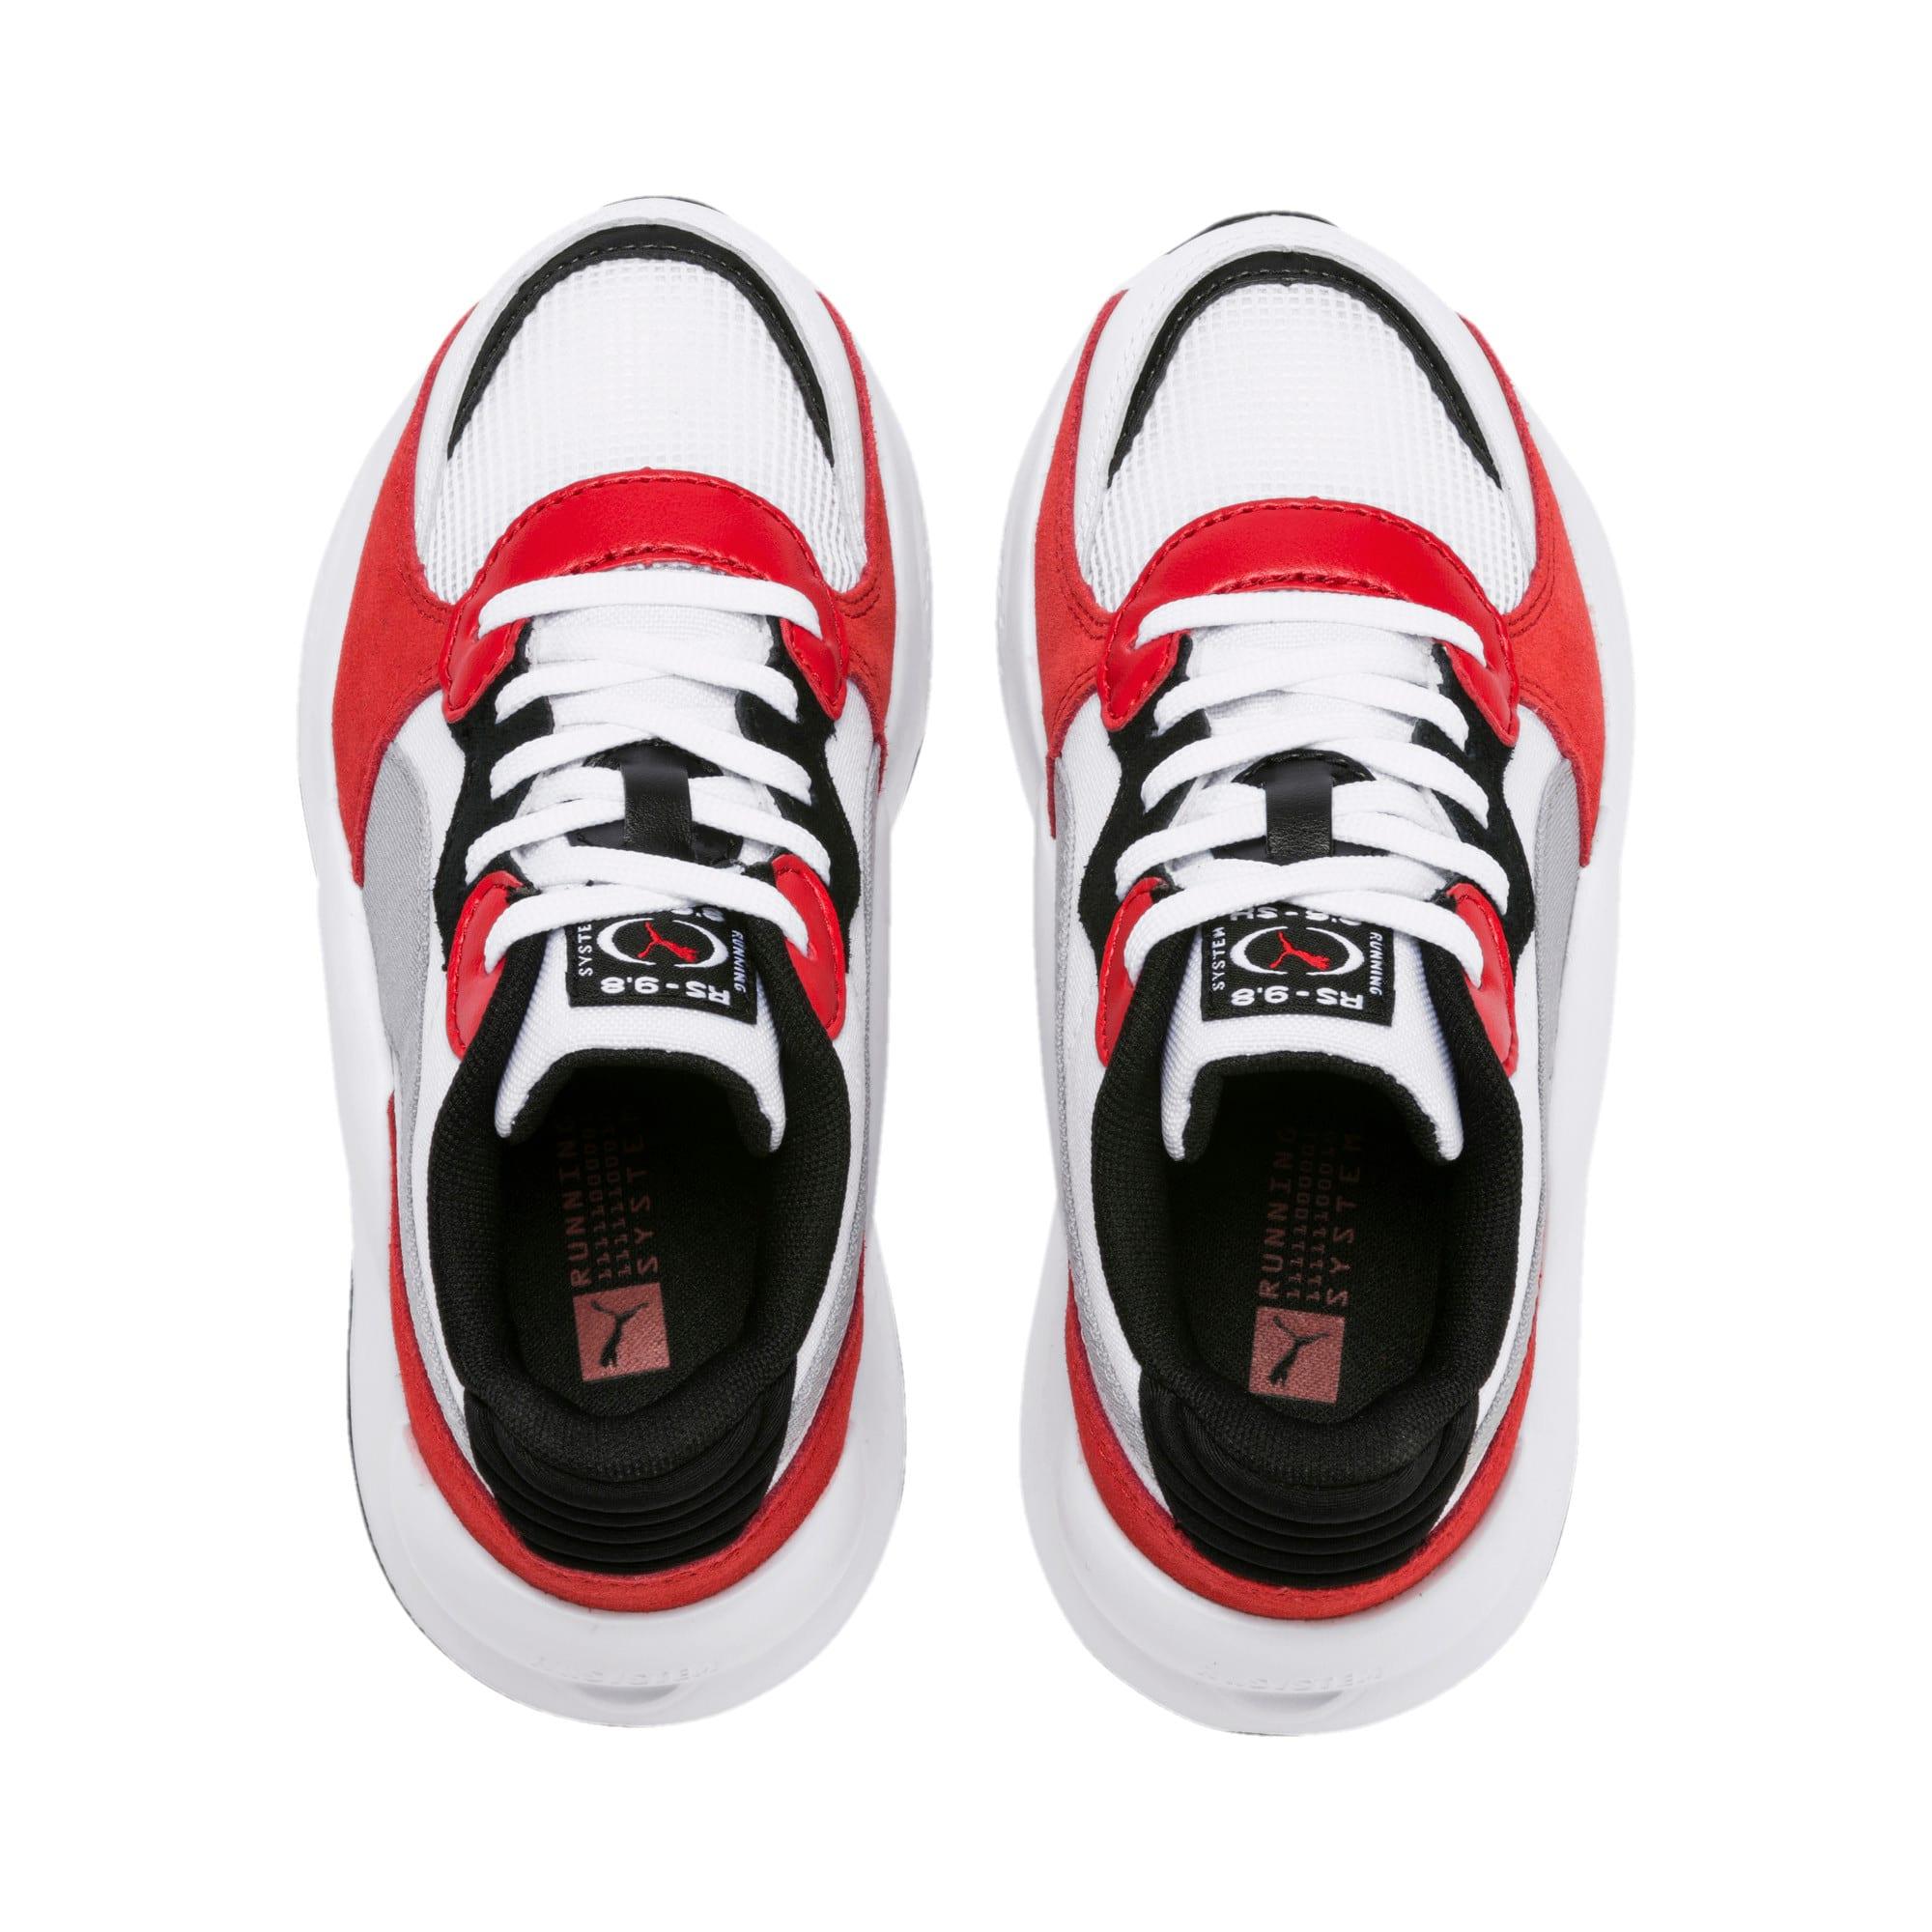 Thumbnail 6 of RS 9.8 Space Little Kids' Shoes, Puma White-High Risk Red, medium